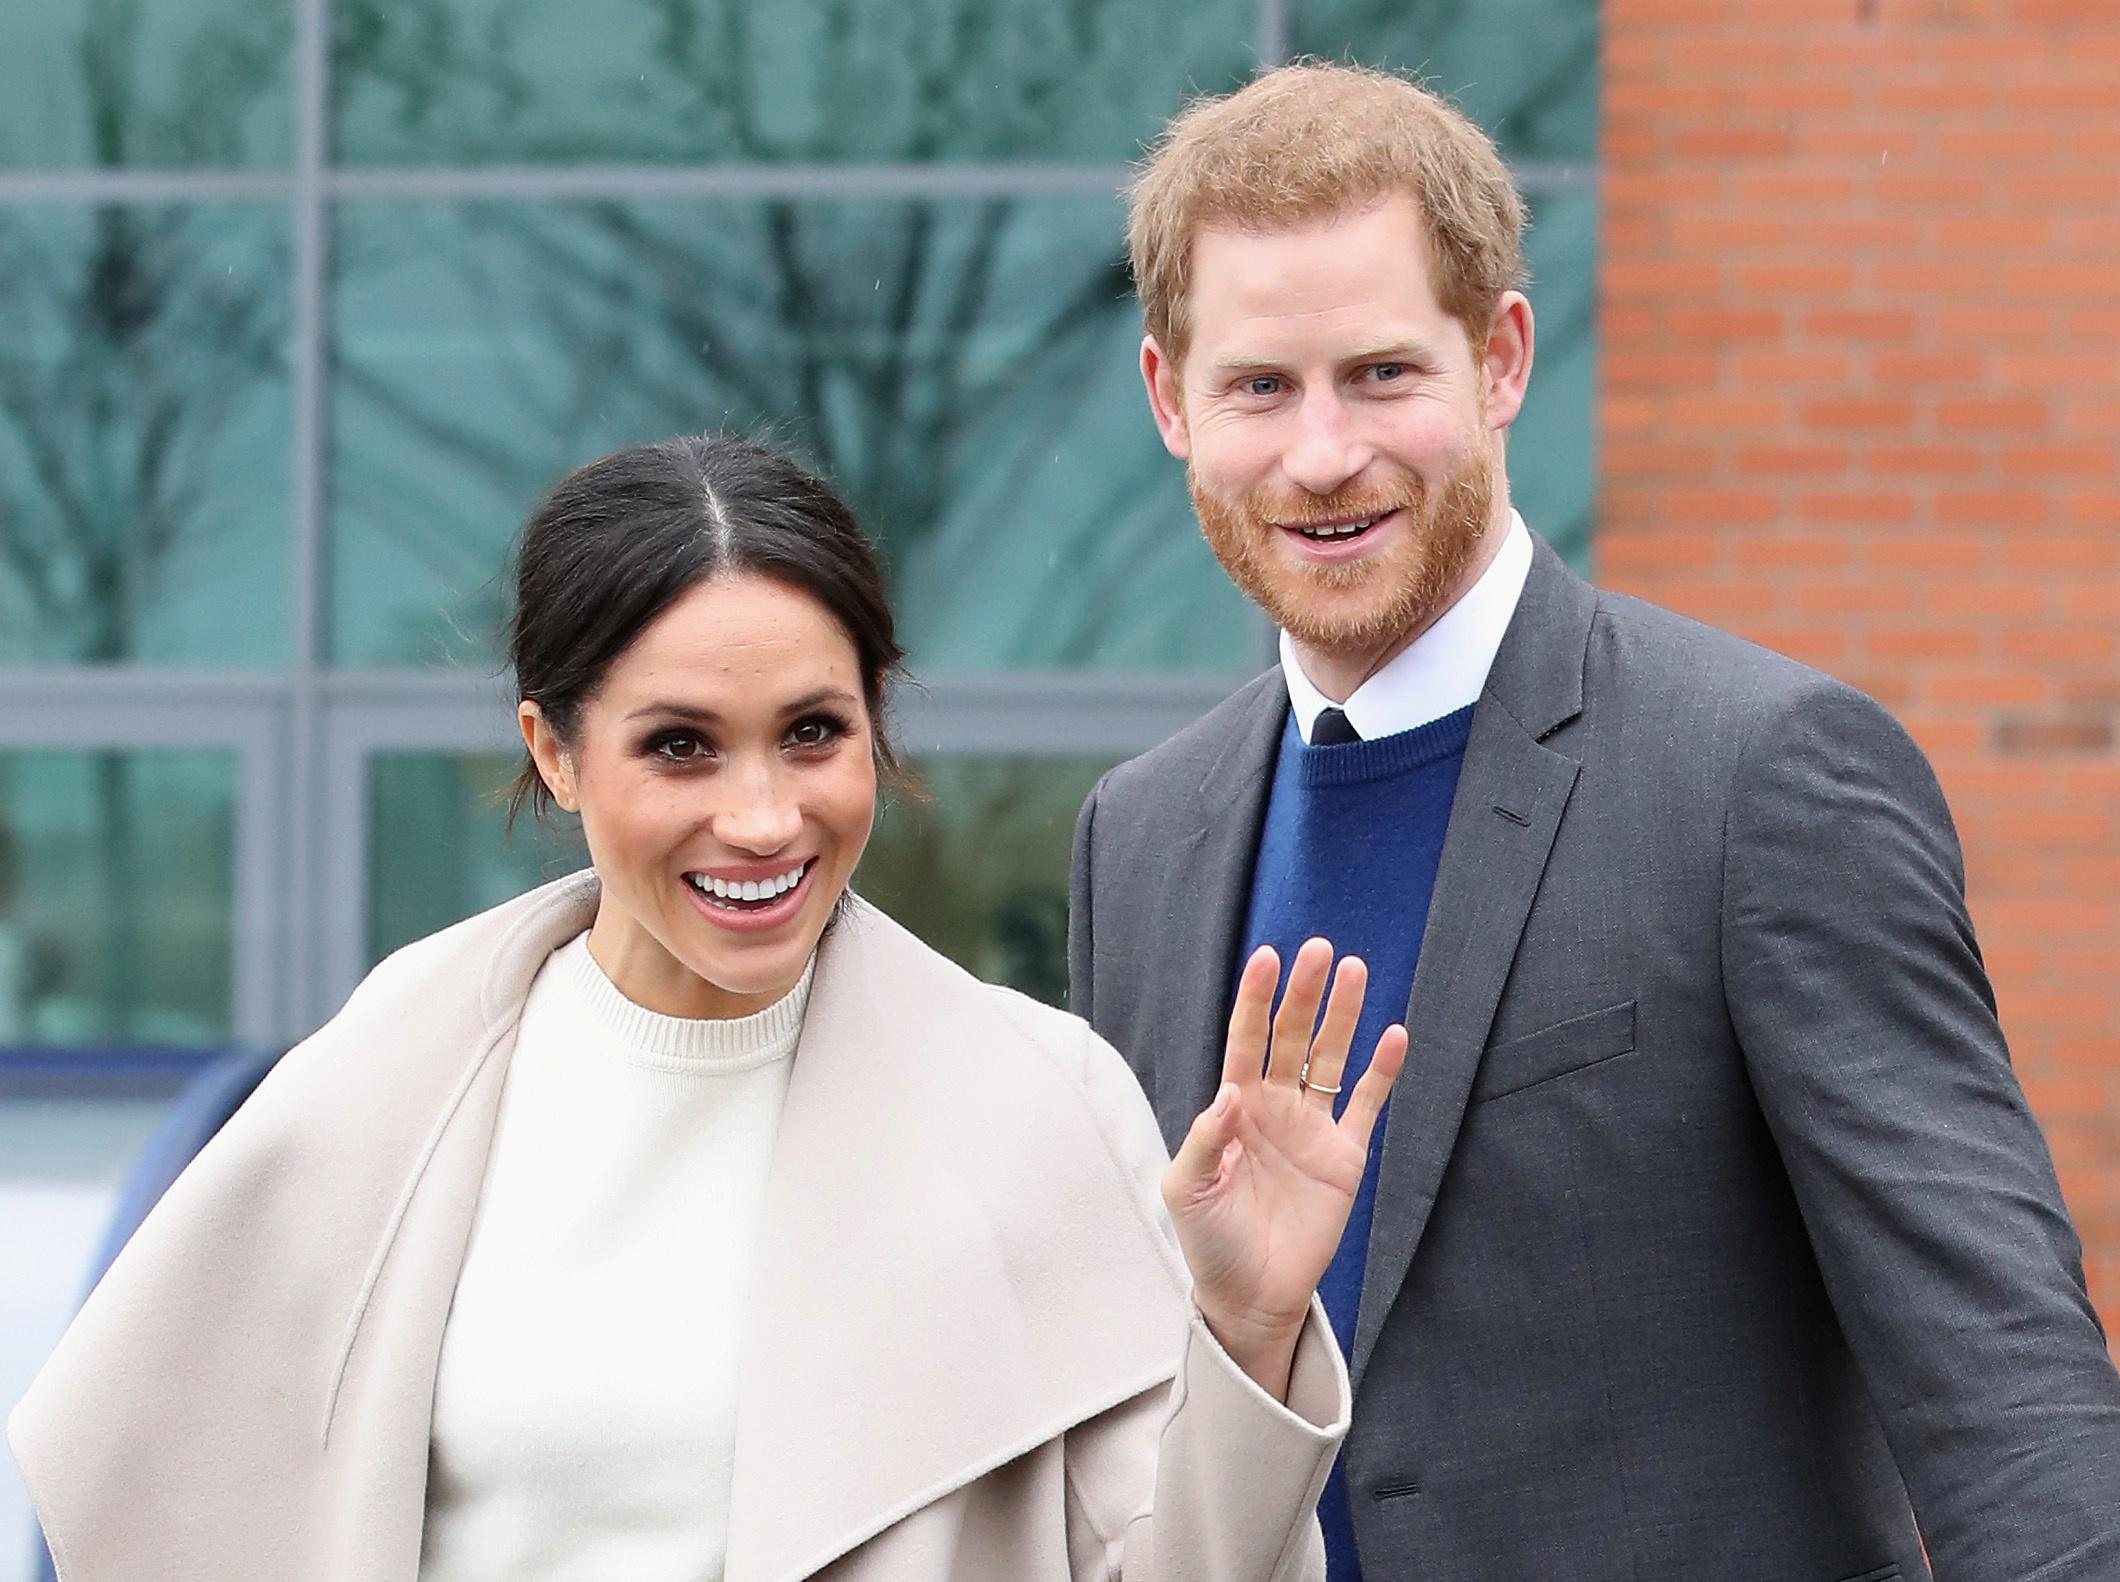 Prince Harry and Meghan Markle's wedding could cost taxpayers more than £30m